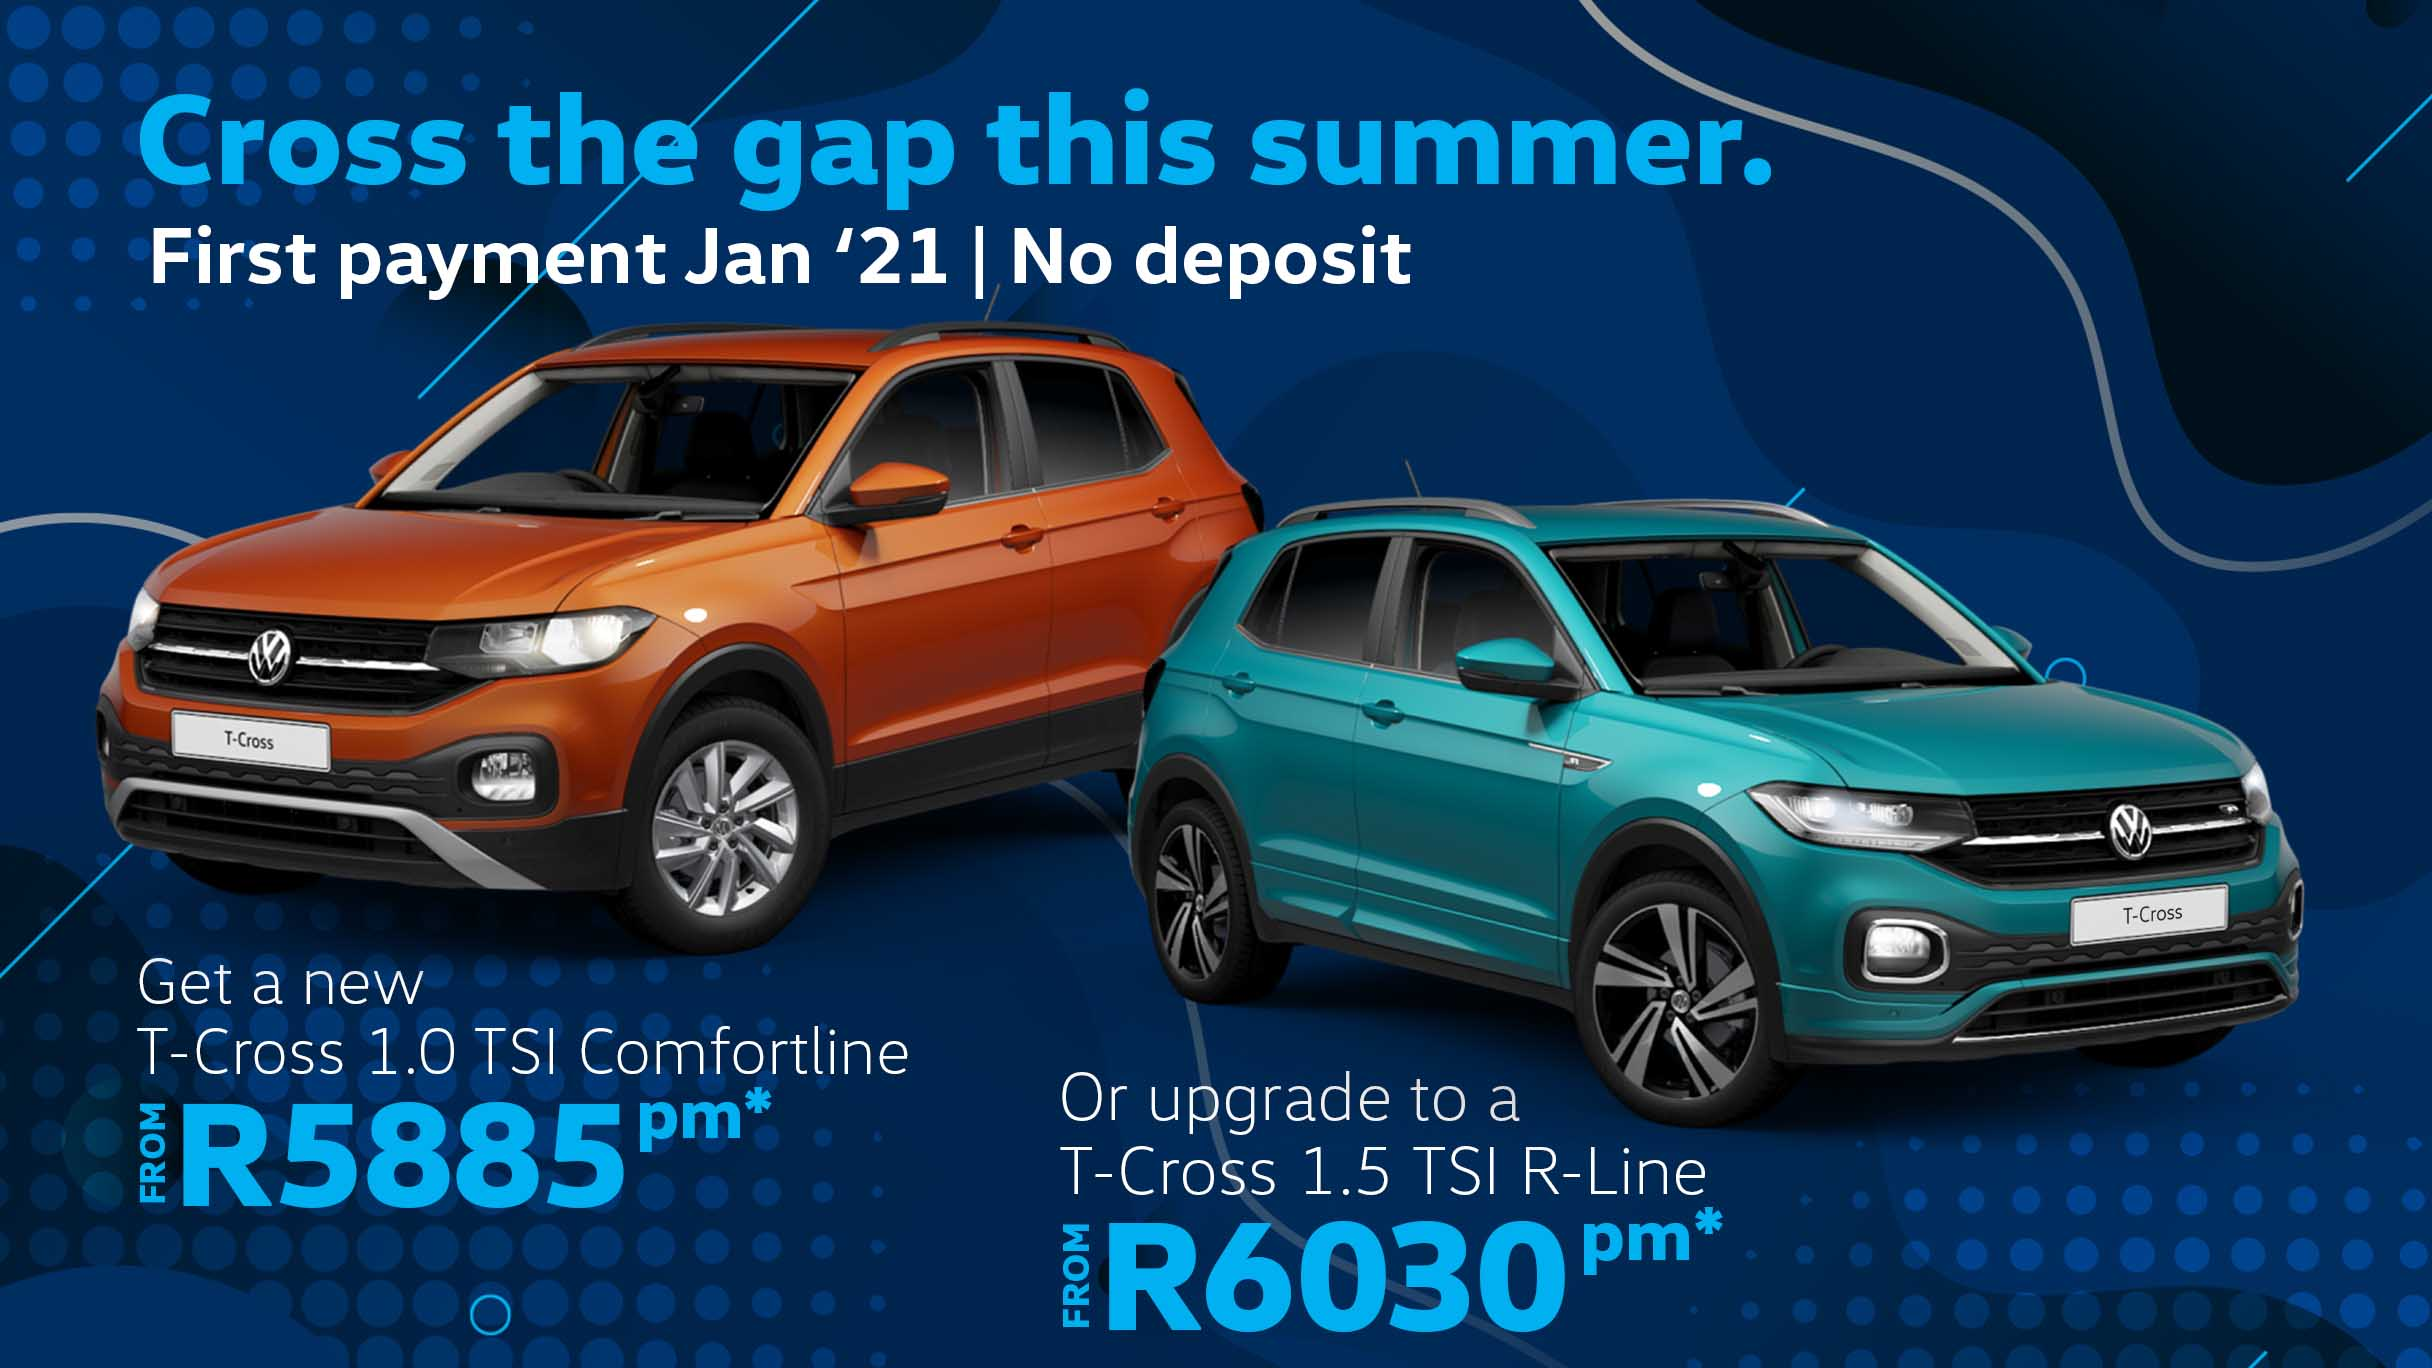 T-Cross car deal at Barons Woodmead, Sandton